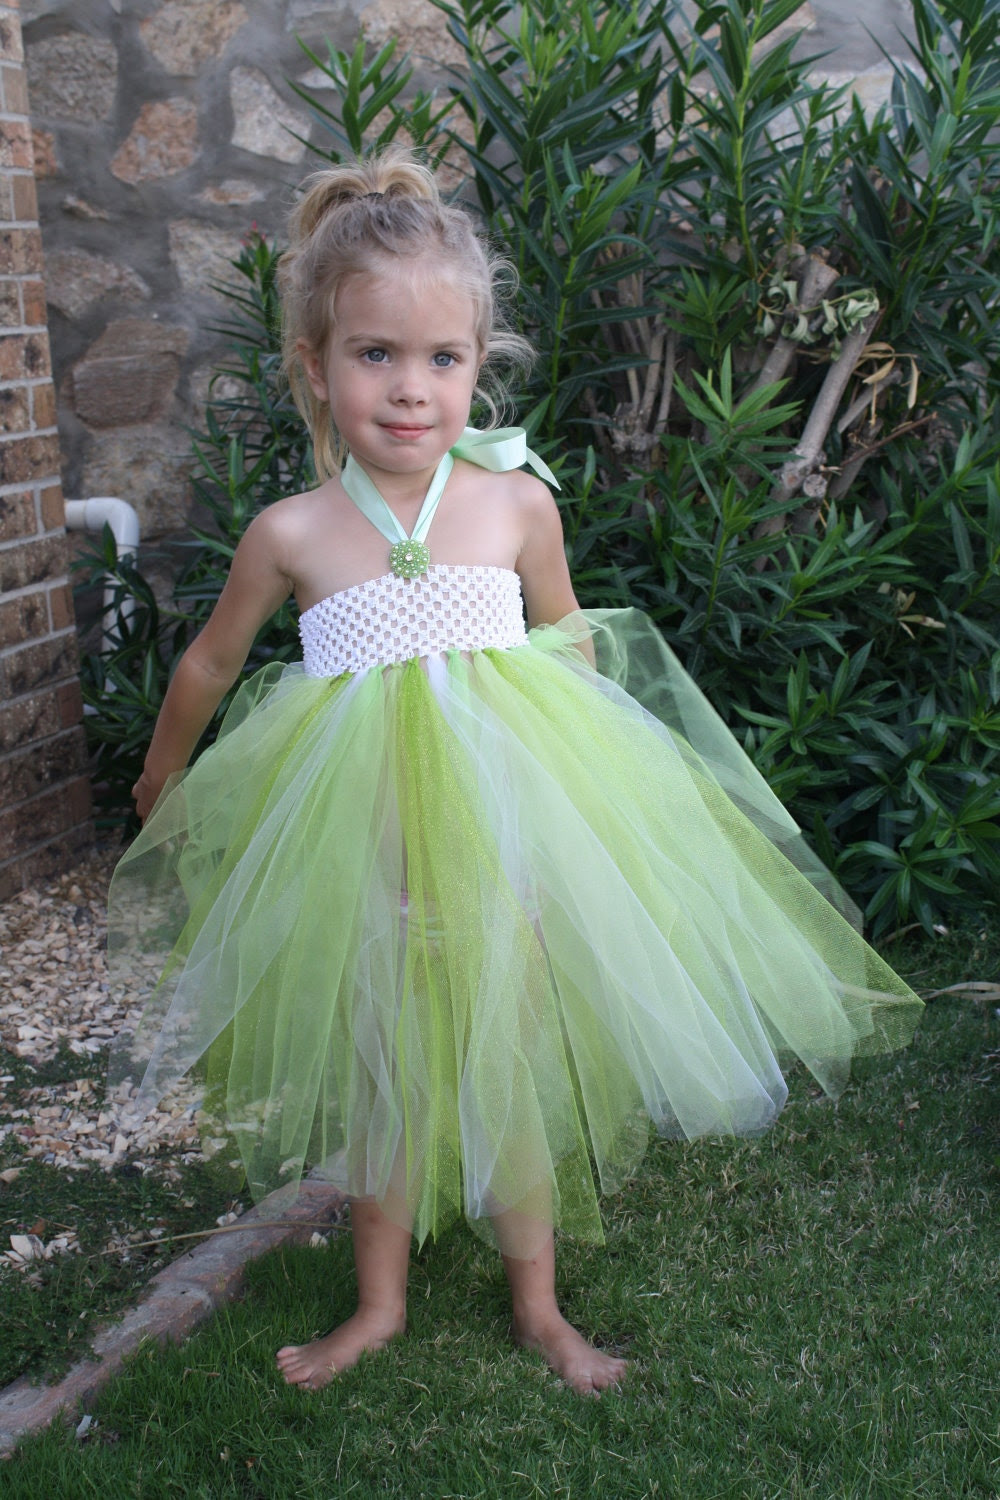 Epilepsy Awareness Tinkerbell Green Tutu Dress w/ Monogram Pin/Embellishment